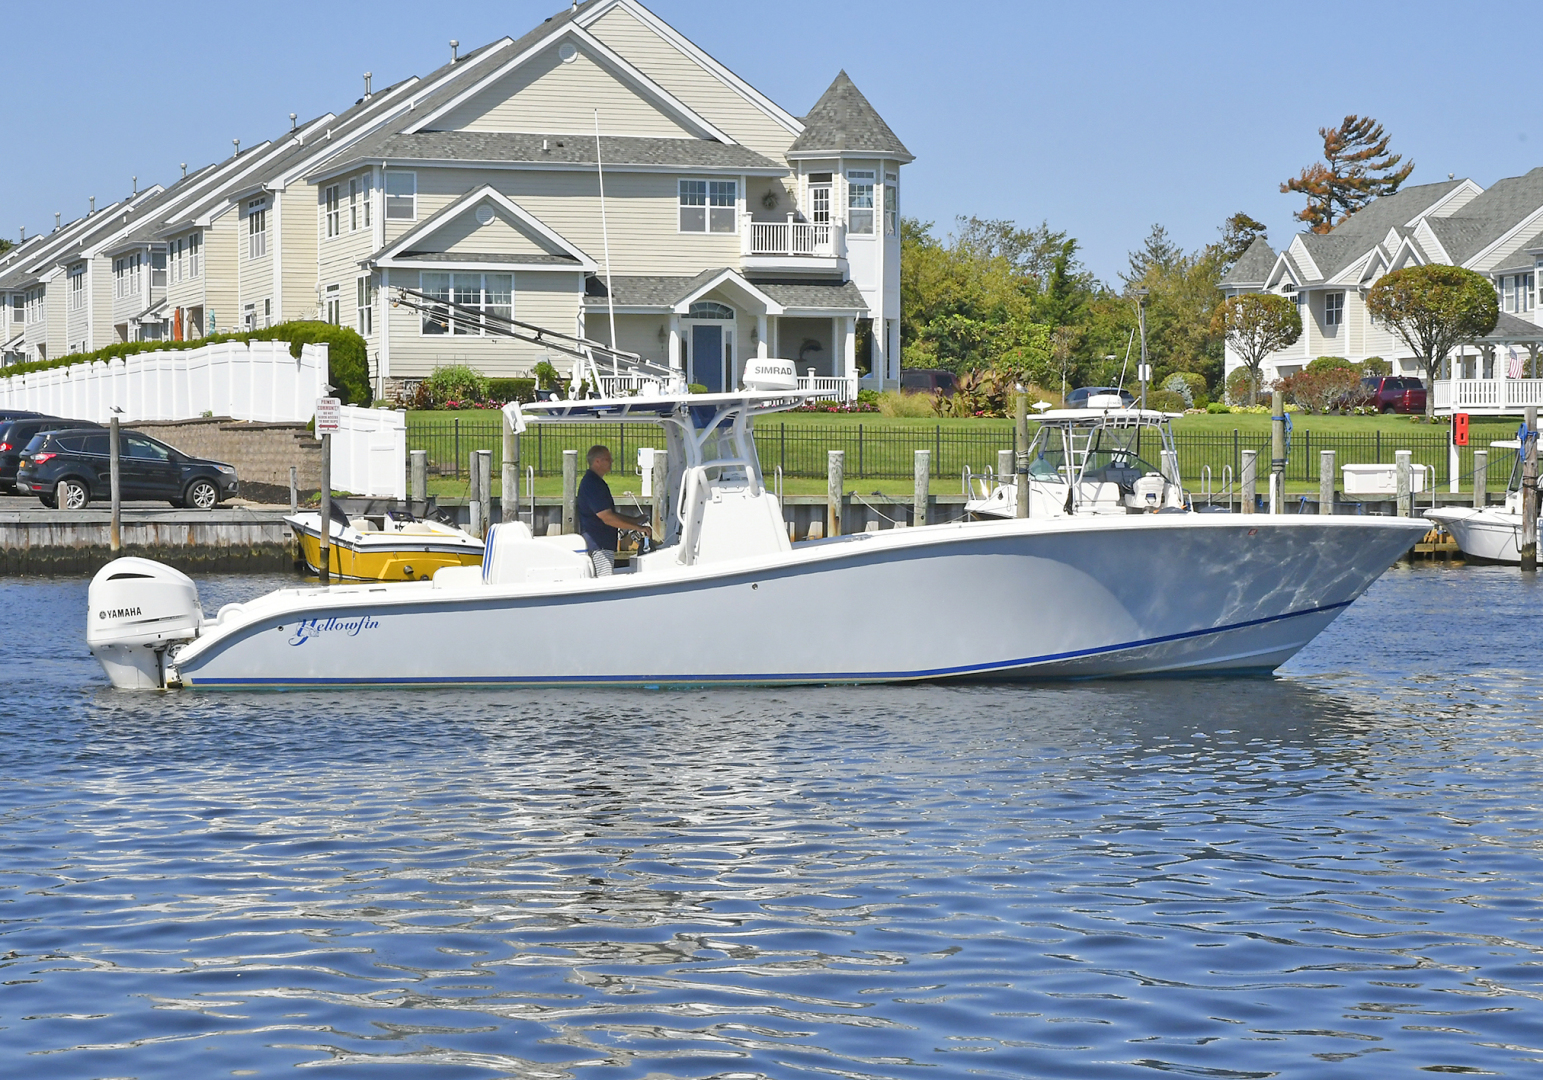 Yellowfin-36 Center Console 2019 -Patchogue-New York-United States-Starboard Side-1468840 | Thumbnail